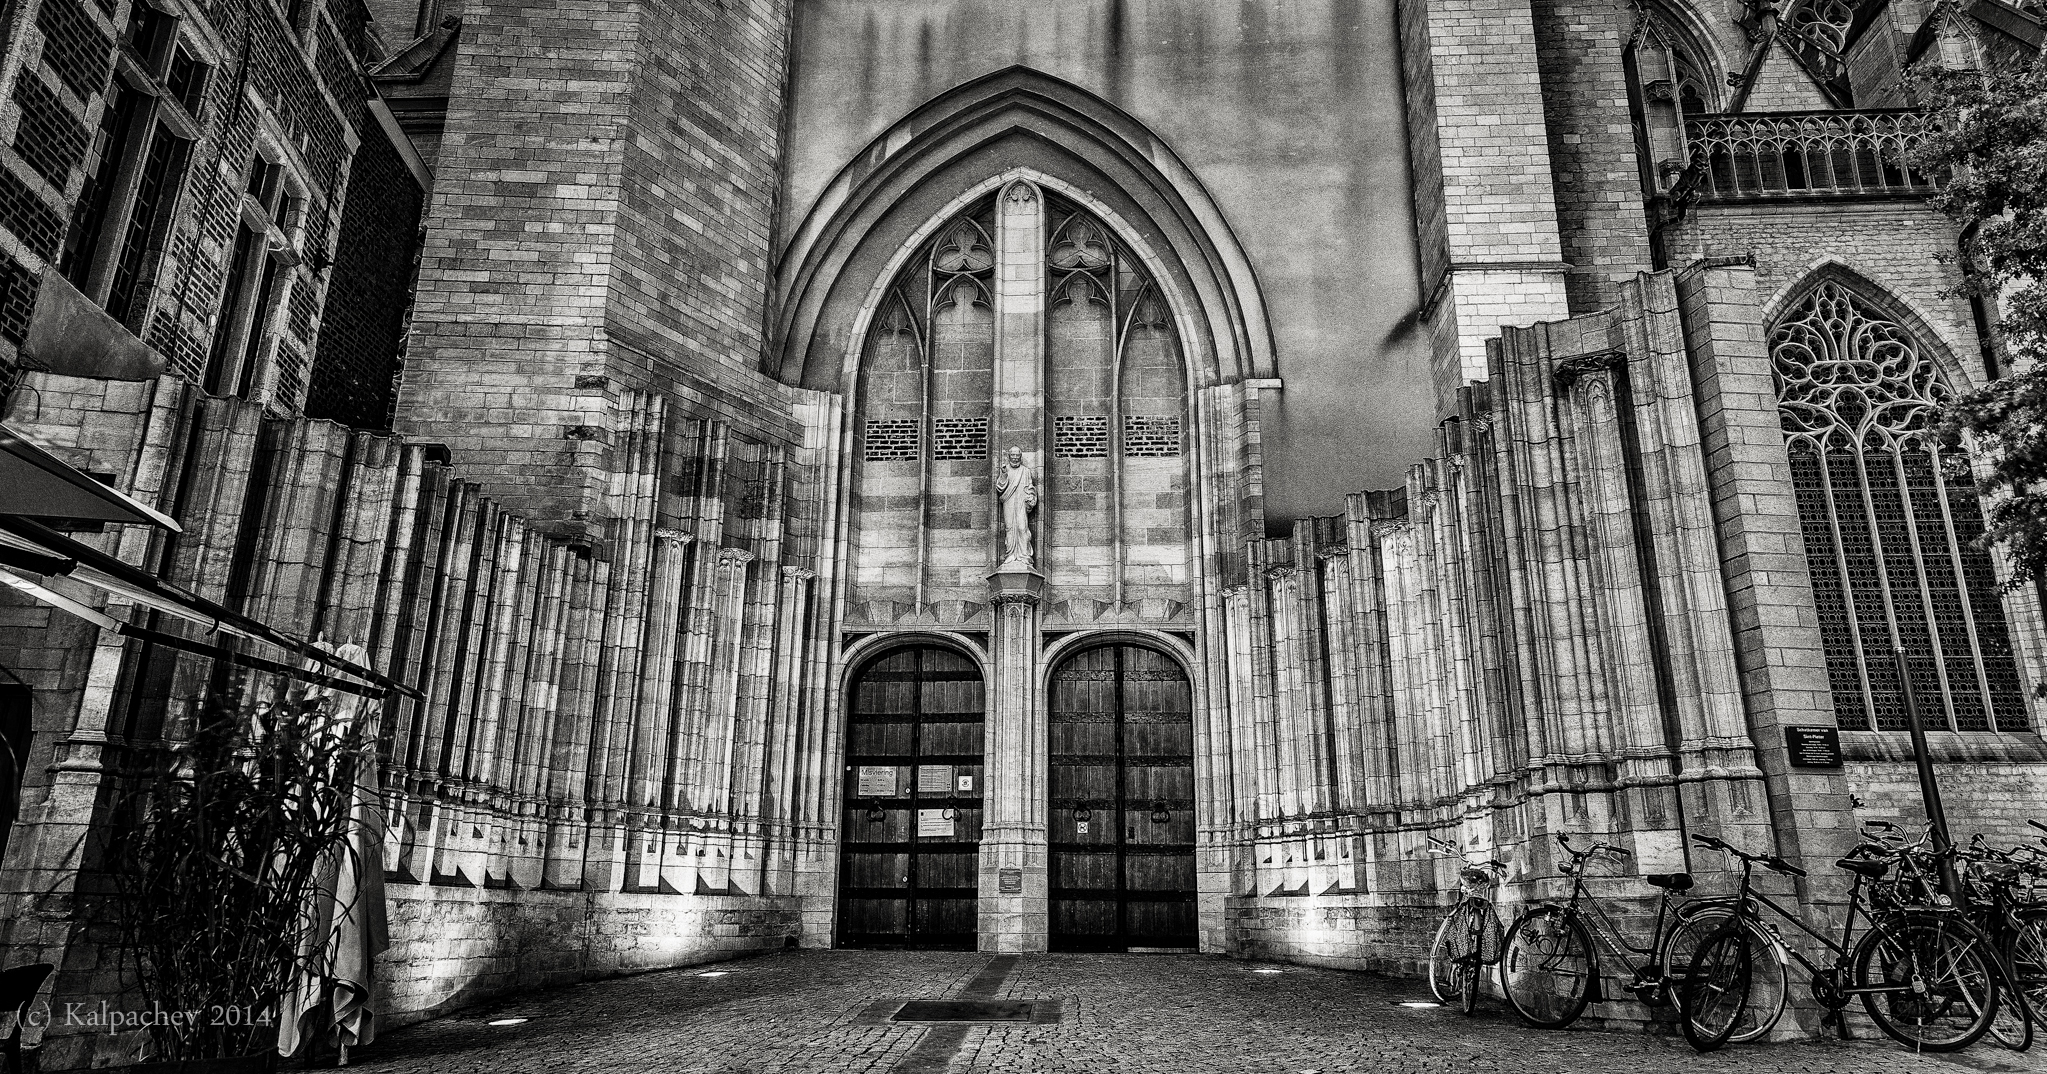 The St. Peter's Church, Leuven, Belgium